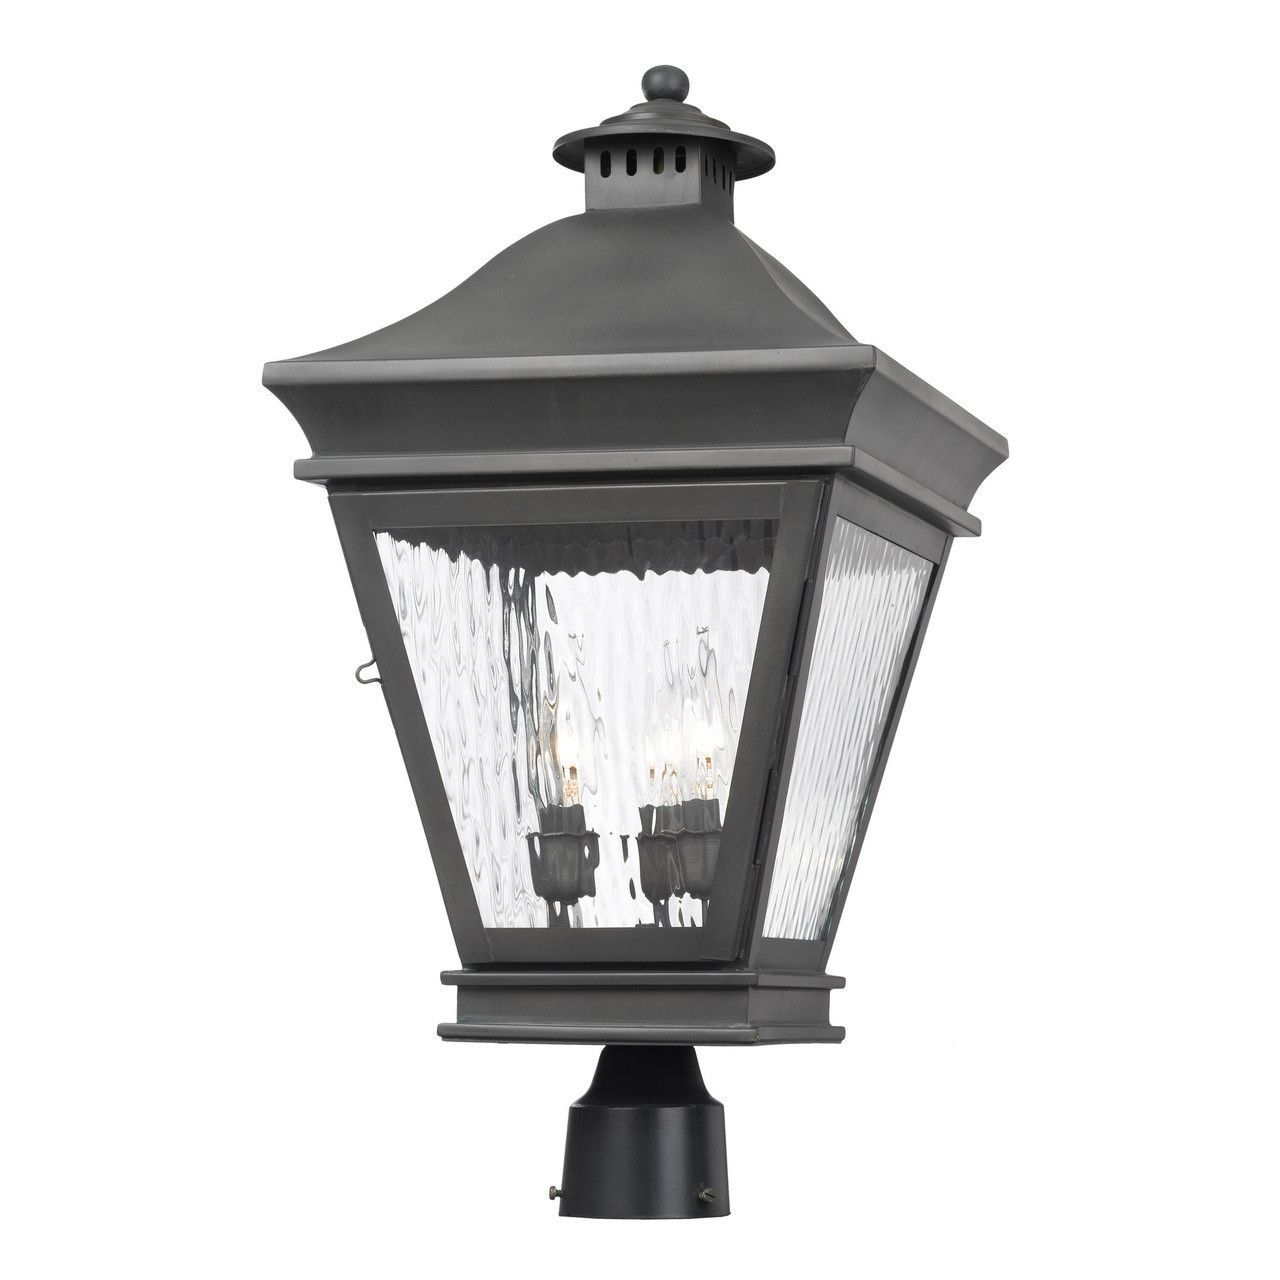 Landings outdoor post lantern in charcoal and water glass c